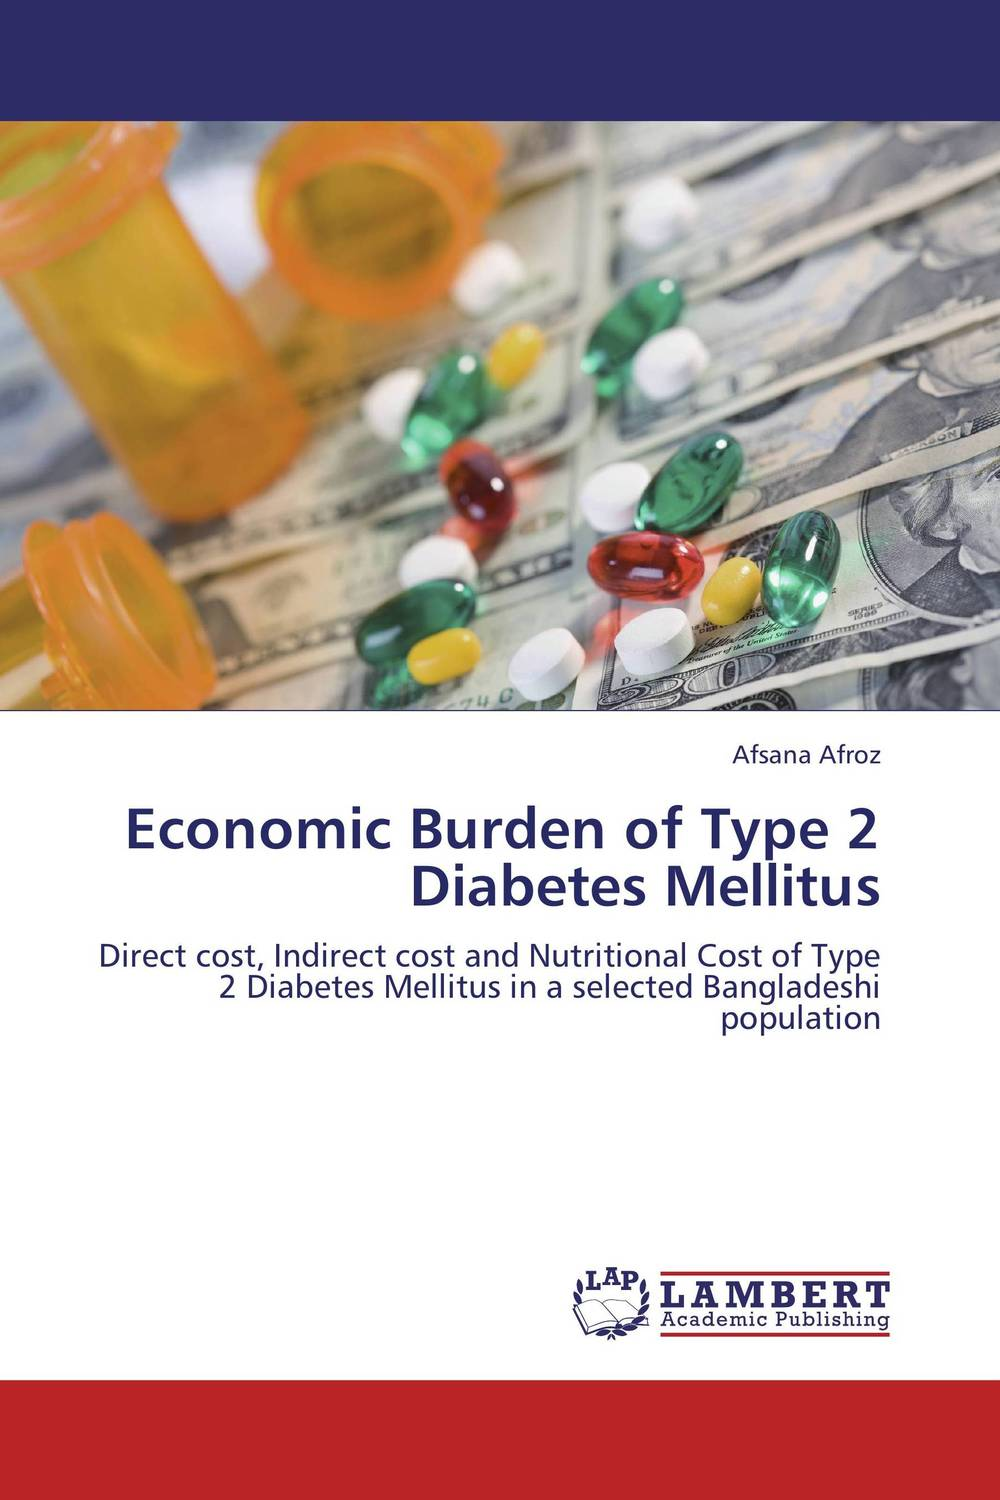 Economic Burden of Type 2 Diabetes Mellitus sharad leve rakesh verma and rakesh kumar dixit role of irbesartan and curcumin in type 2 diabetes mellitus